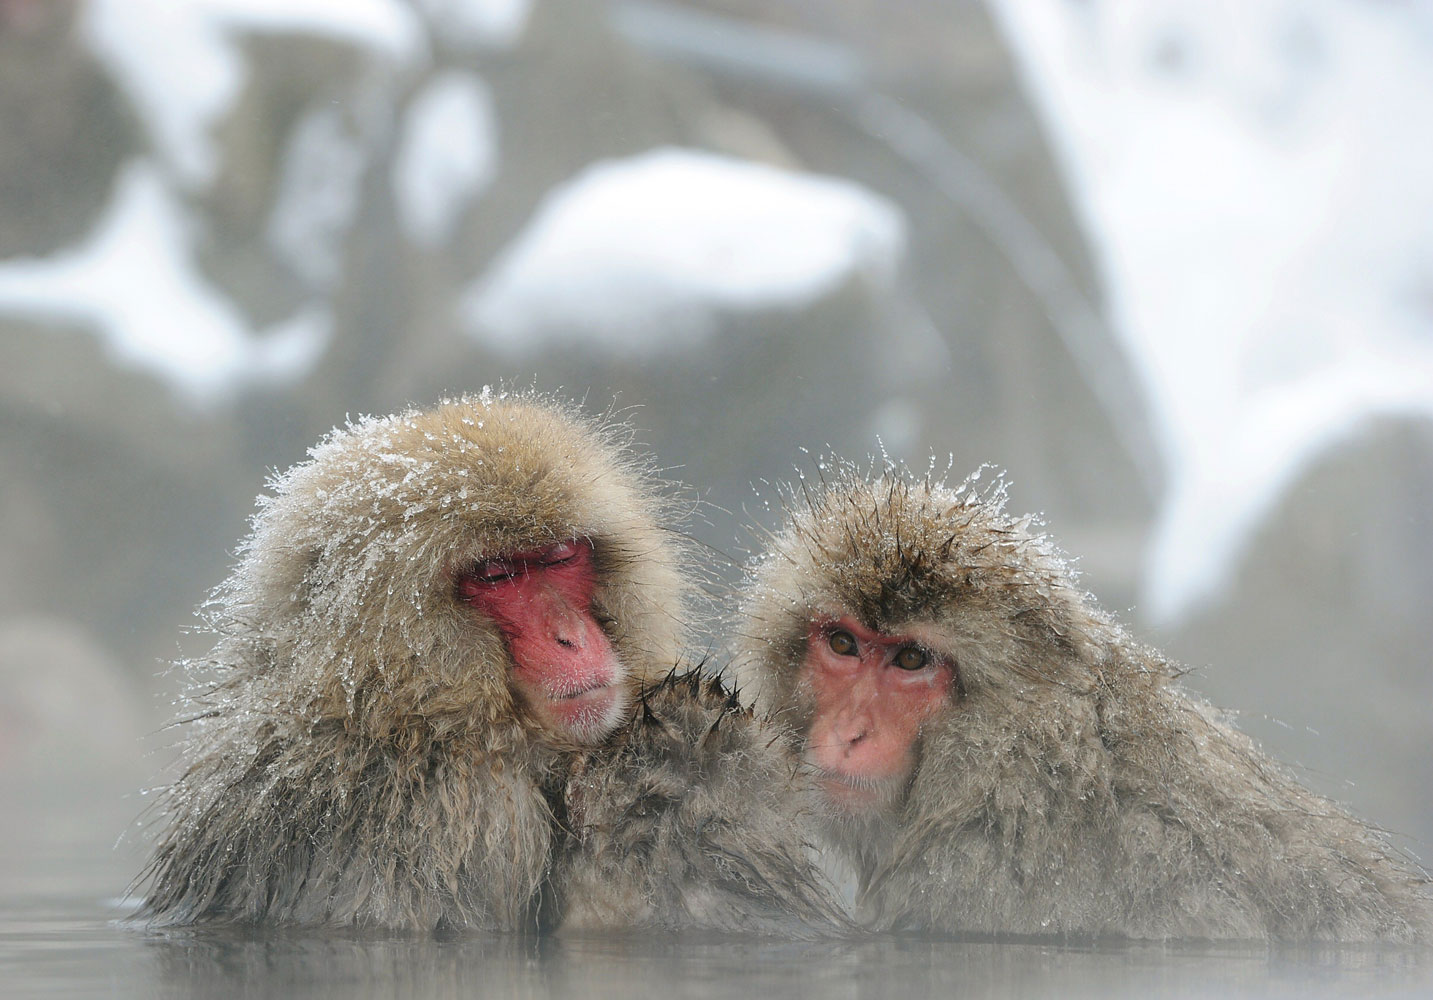 Japanese macaque monkeys, known as  snow monkeys,  take an open-air hot spring bath at the Jigokudani Monkey Park in the town of Yamanouchi, Nagano prefecture on Jan. 19, 2014.